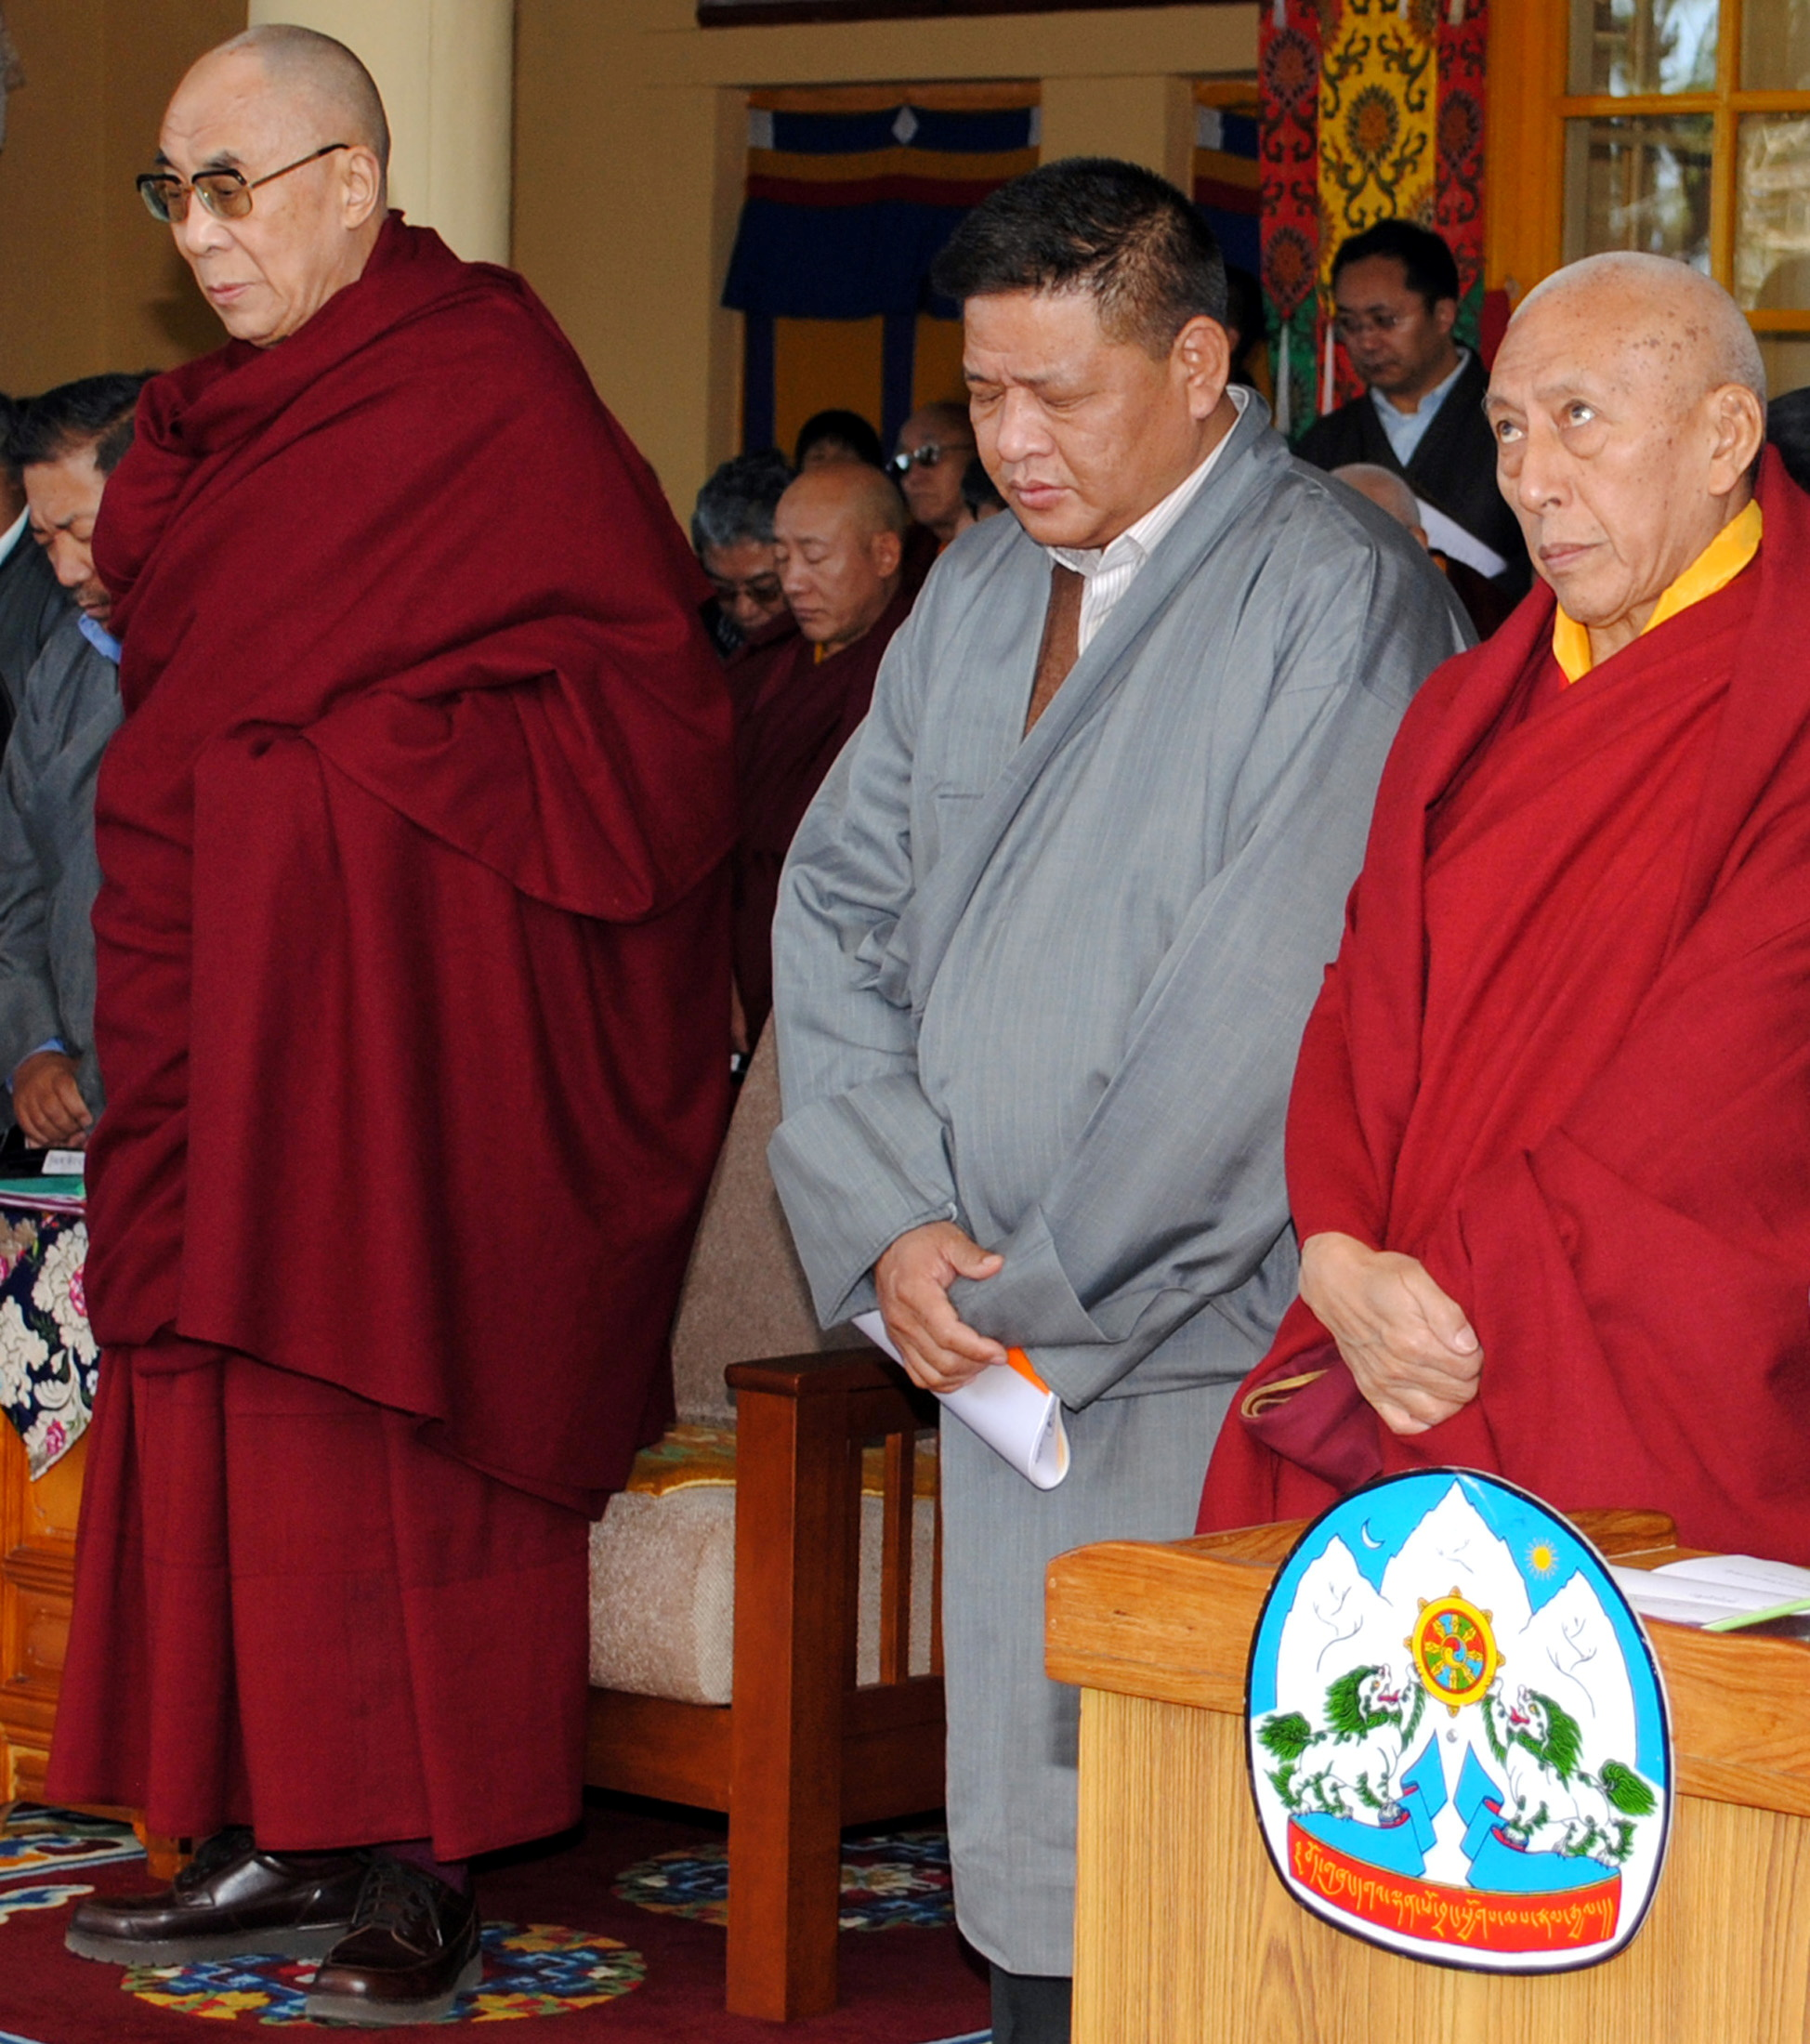 Tibet's exiled Buddhist spiritual leader the Dalai Lama, Penpa Tsering (in grey), speaker of the Tibetan Parliament-in-exile and Samdhong Rinpoche (R), Prime Minister of the Tibetan government-in-exile, observe a minute's silence during a ceremony in the northern Indian hilltown of Dharamsala March 10, 2011. REUTERS/Stringer